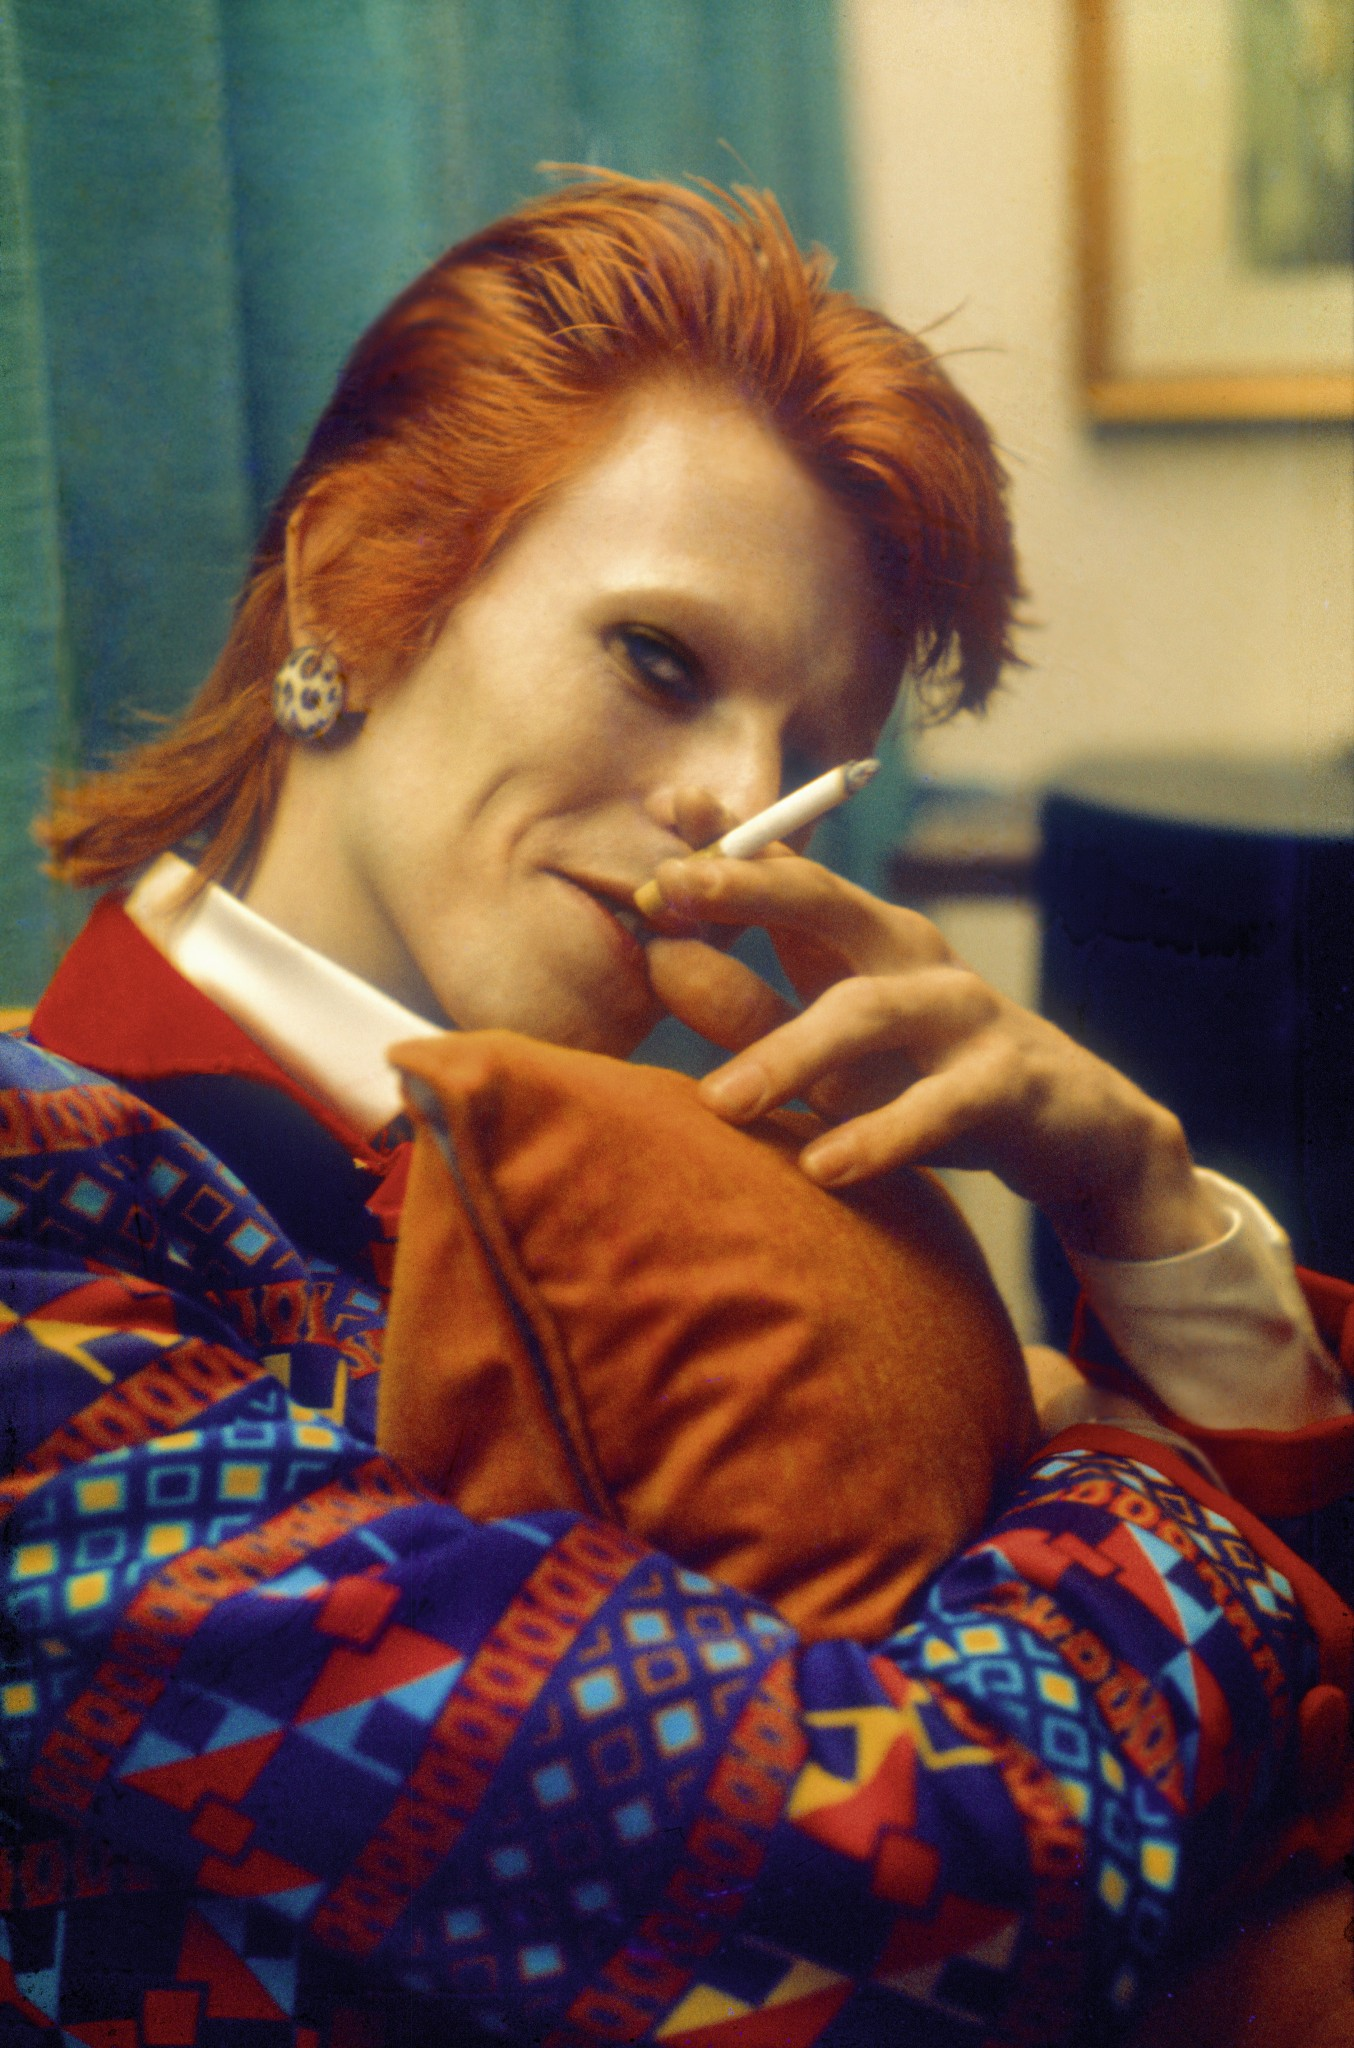 David Bowie, photographed by Mick Rock